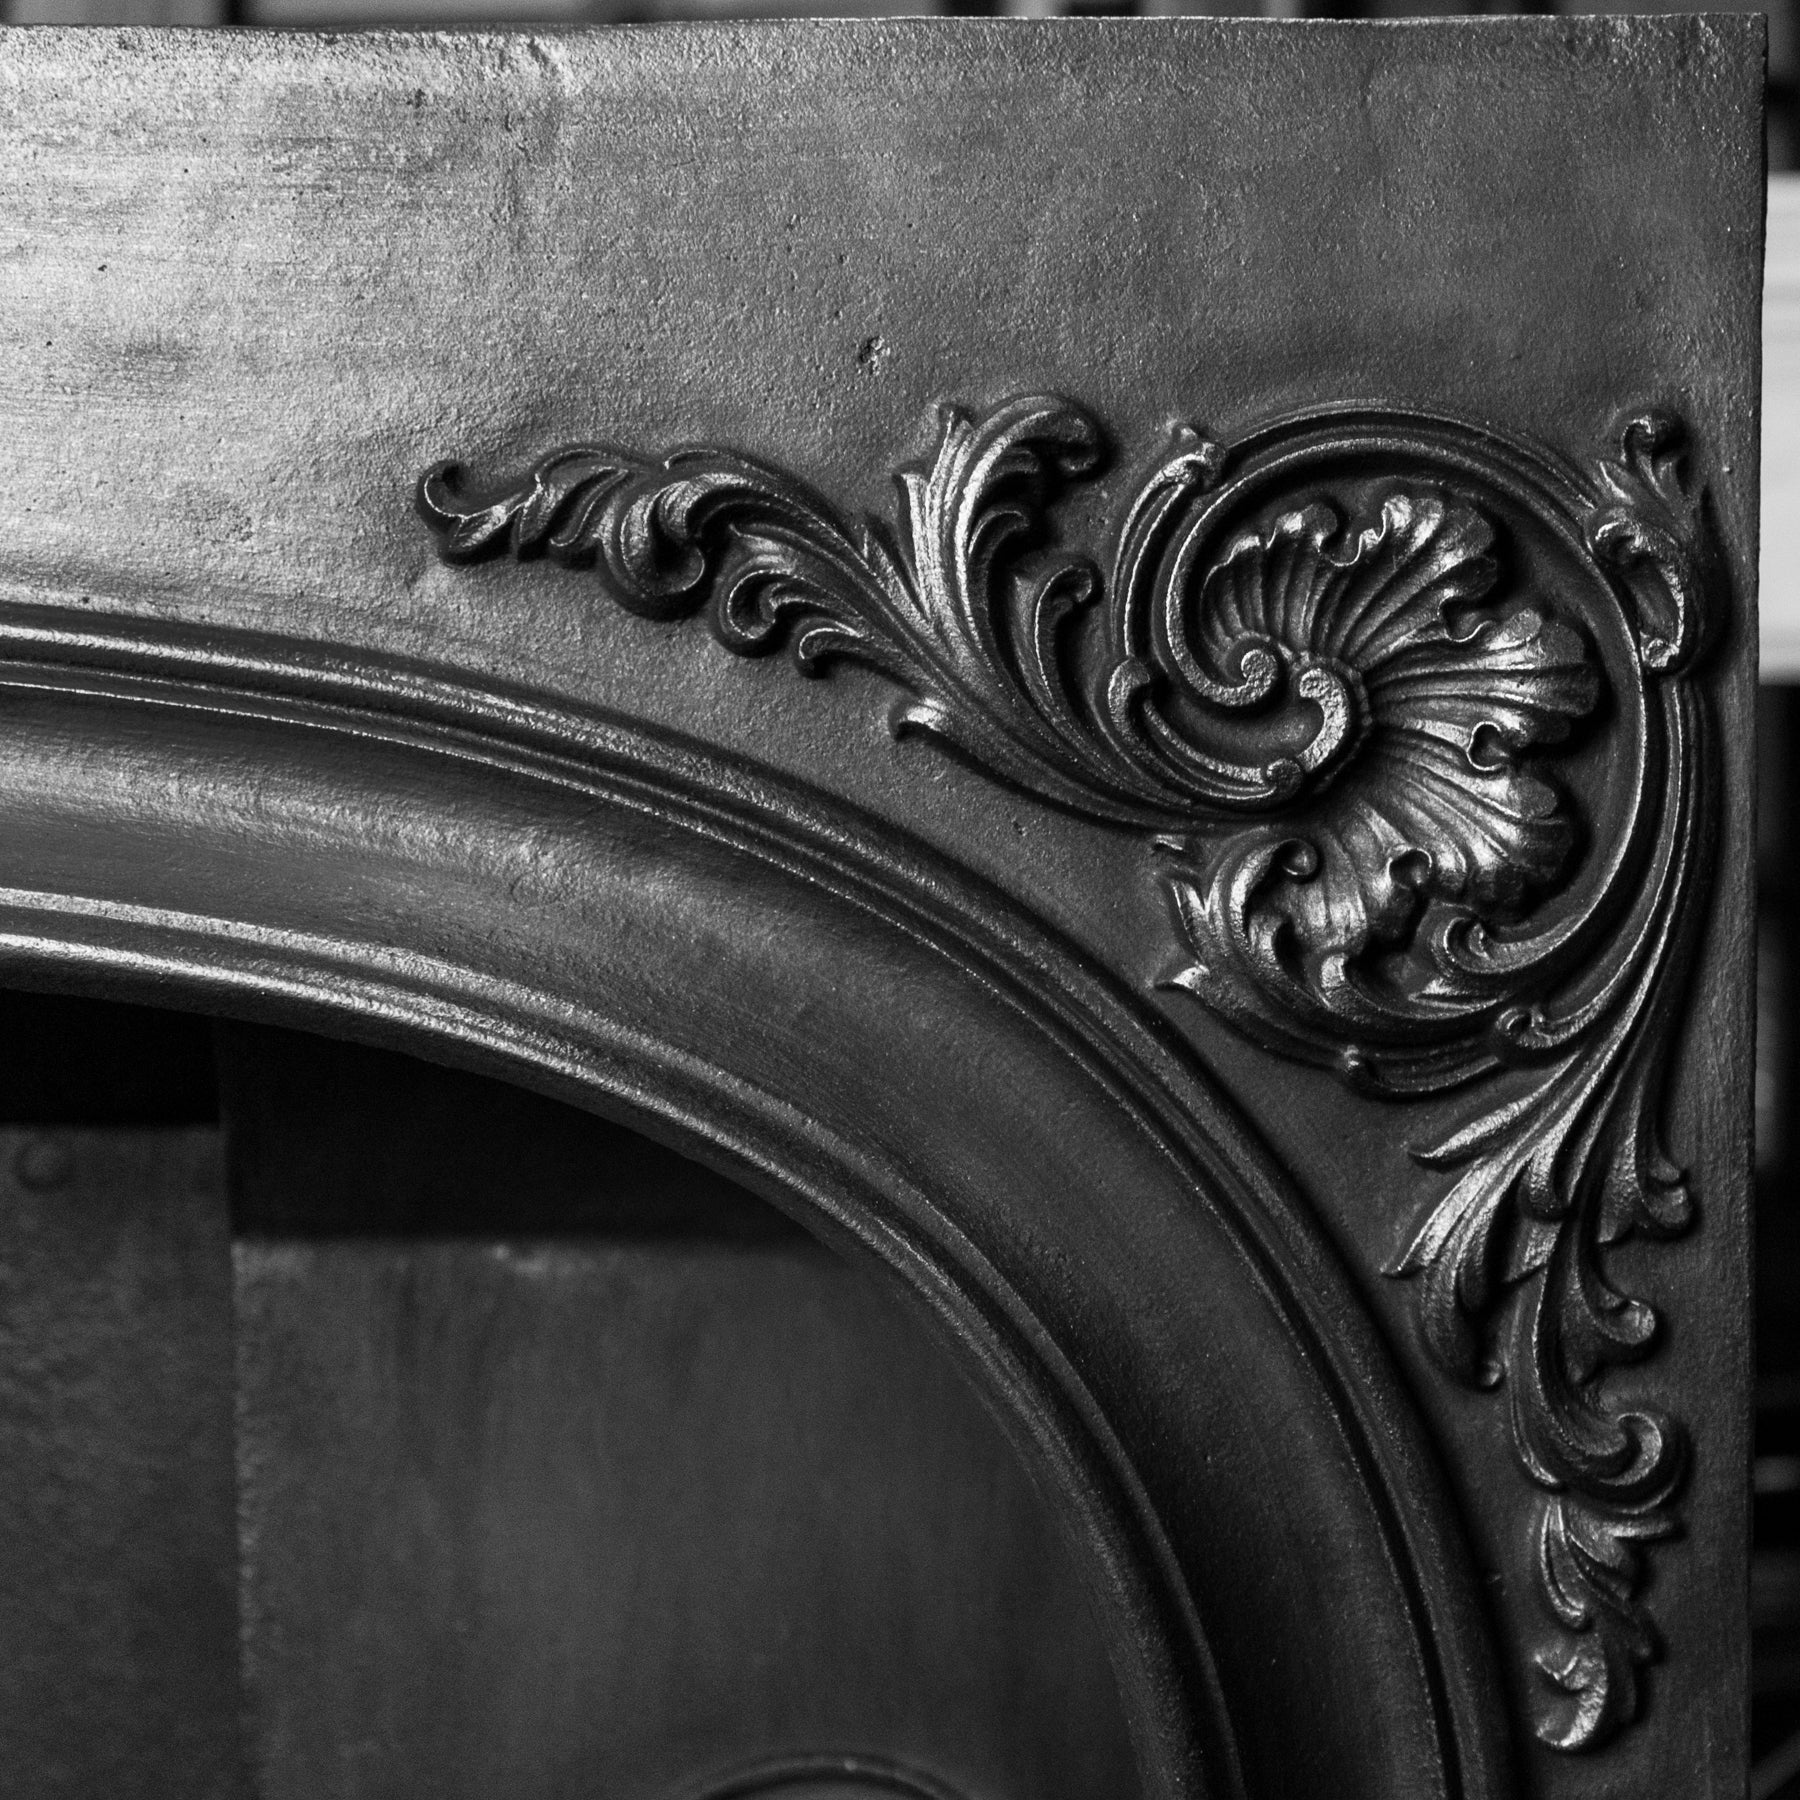 Antique Ornate Late Georgian, Early Victorian Cast Iron Insert | The Architectural Forum